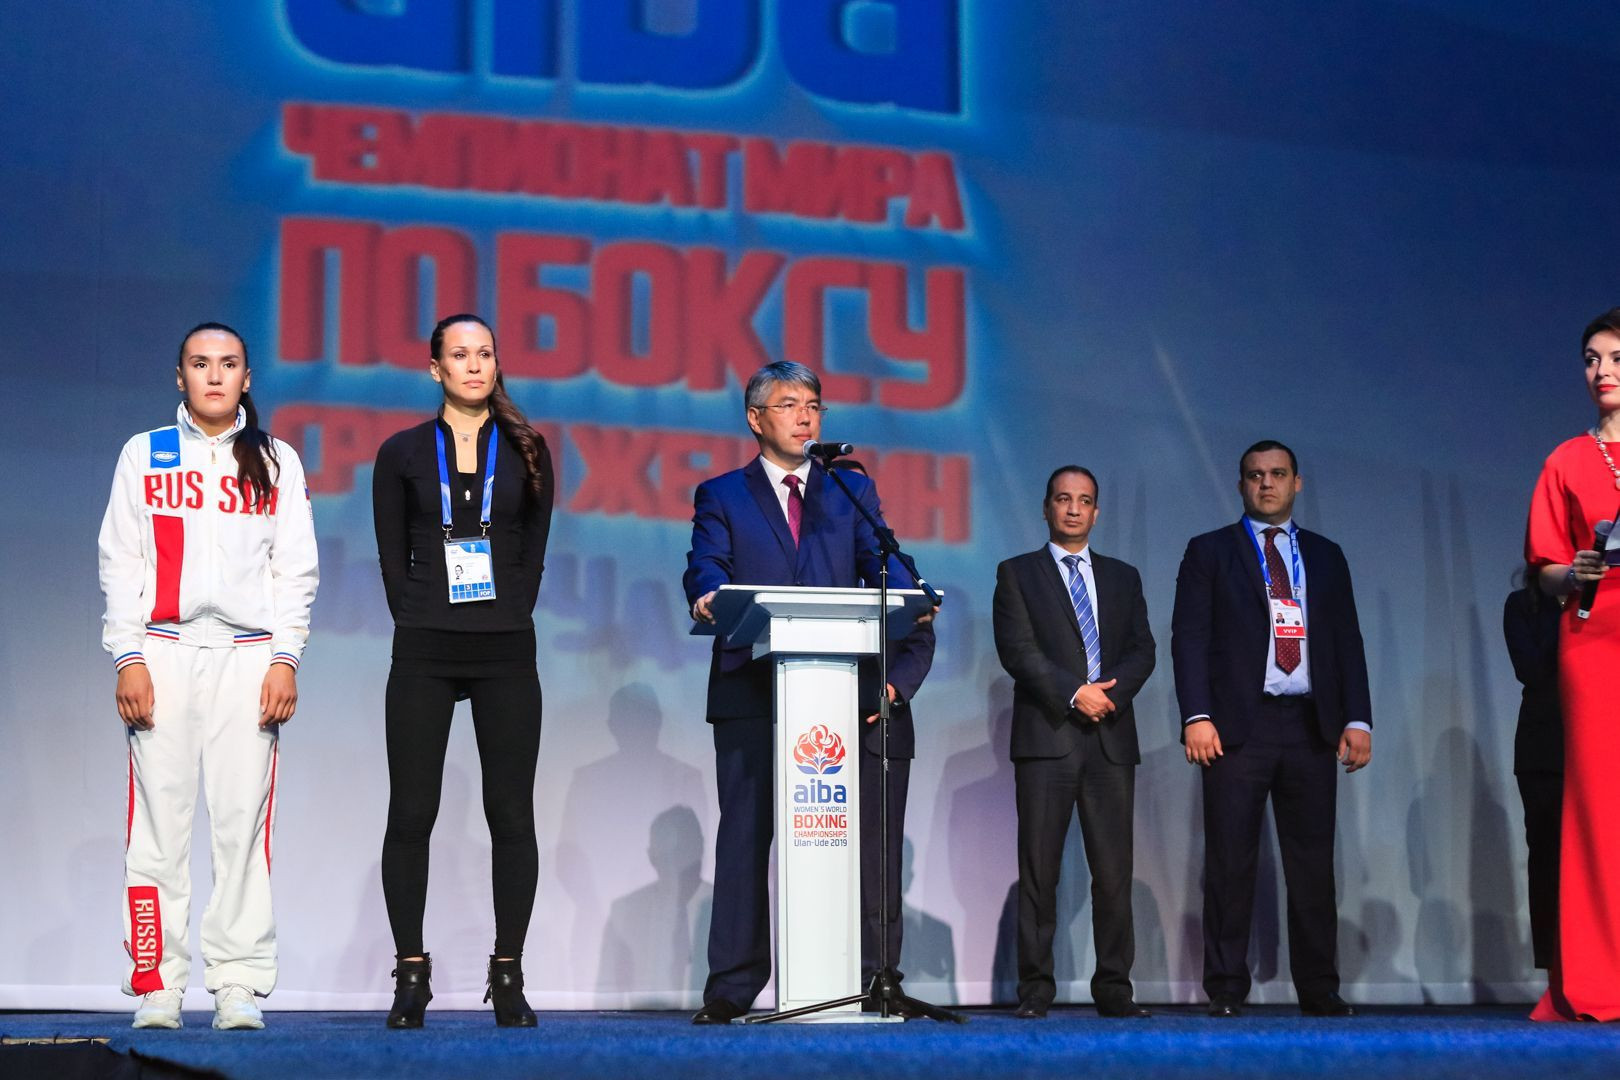 Head of the Republic of Buryatia, Alexey Tsydenov, welcomed participants and fans to Ulan-Ude ©AIBA